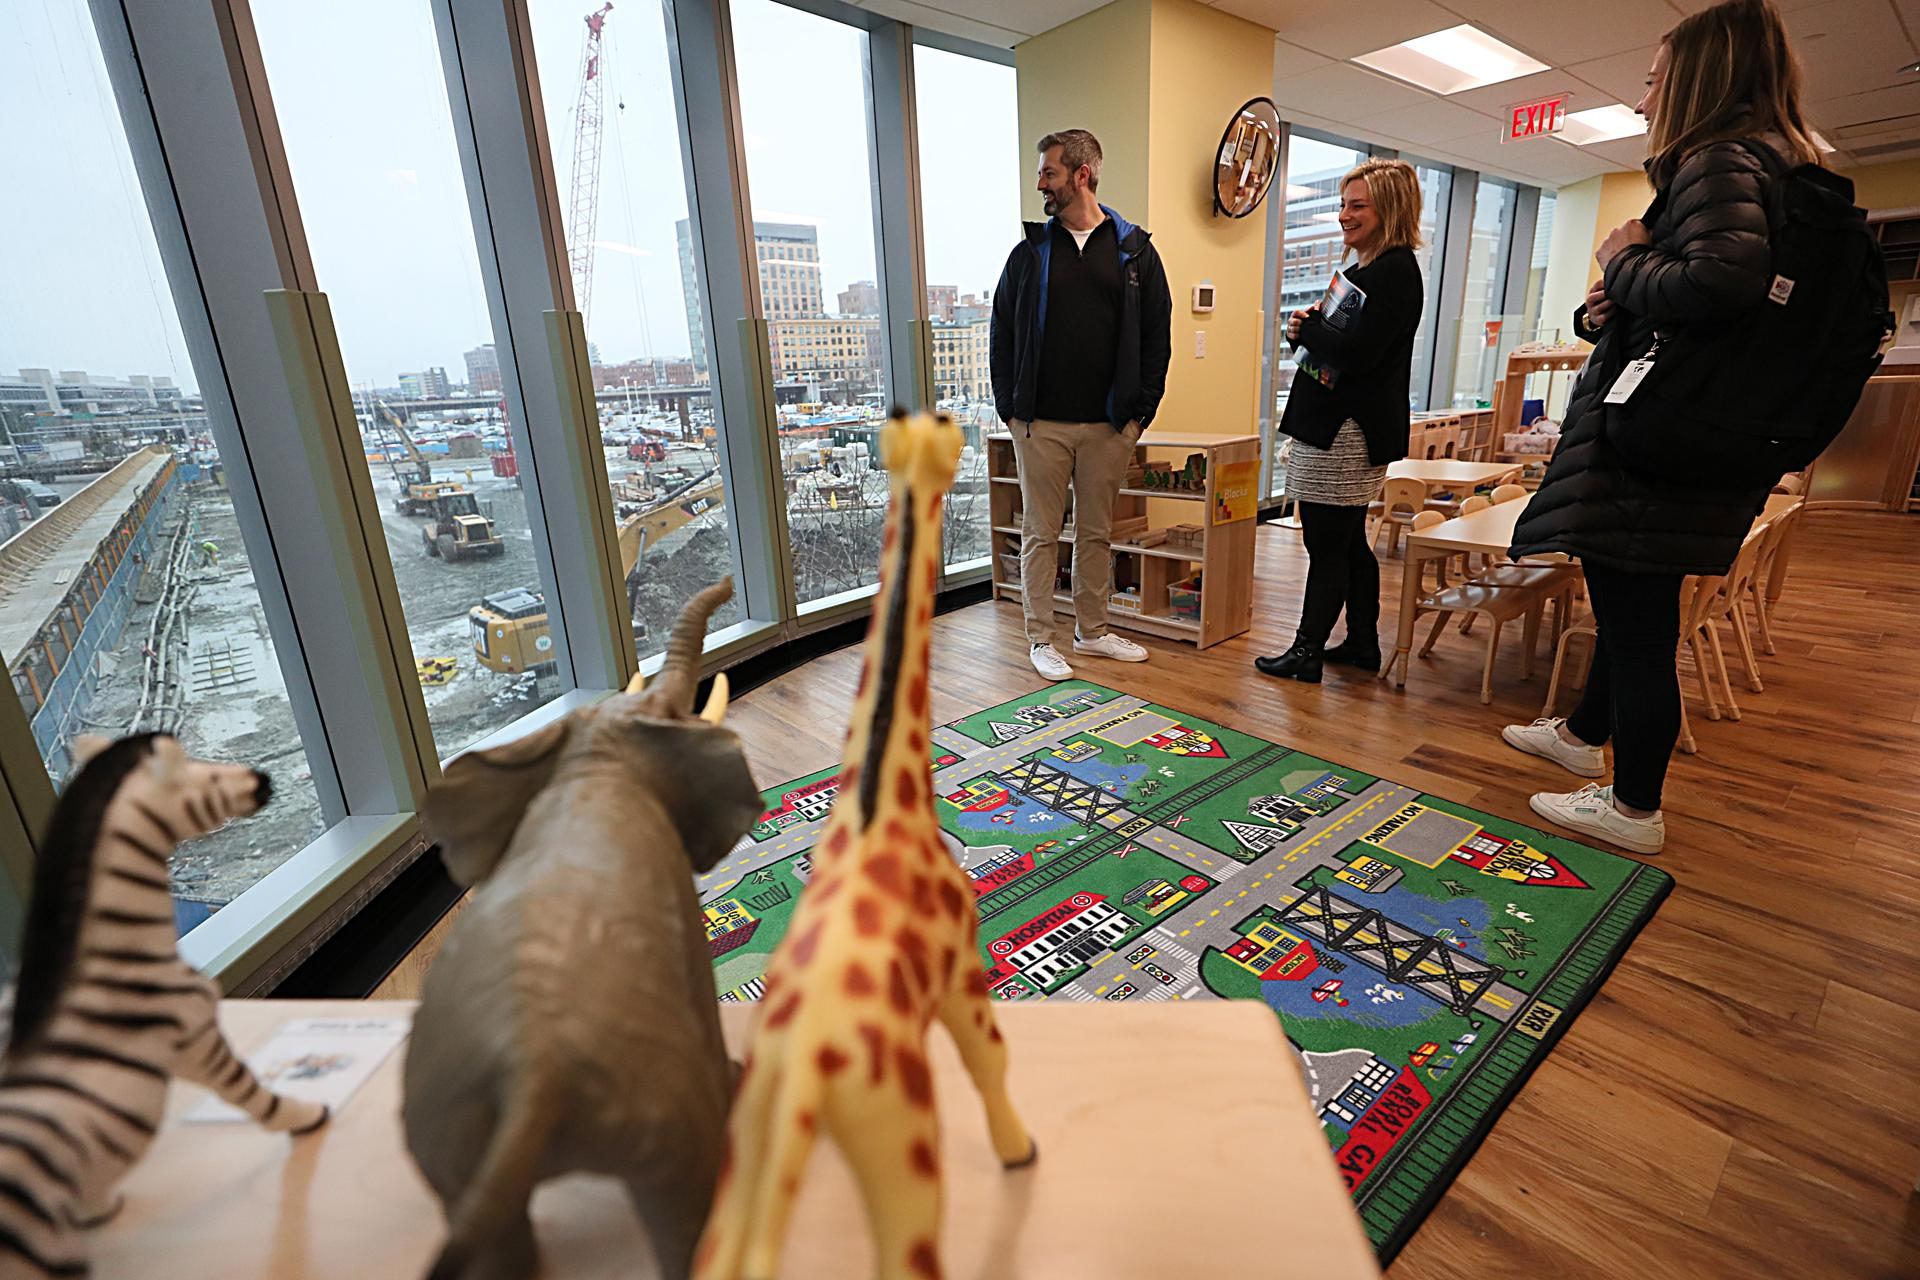 A KinderCare is opening soon as the Seaport District takes shape outside its windows.